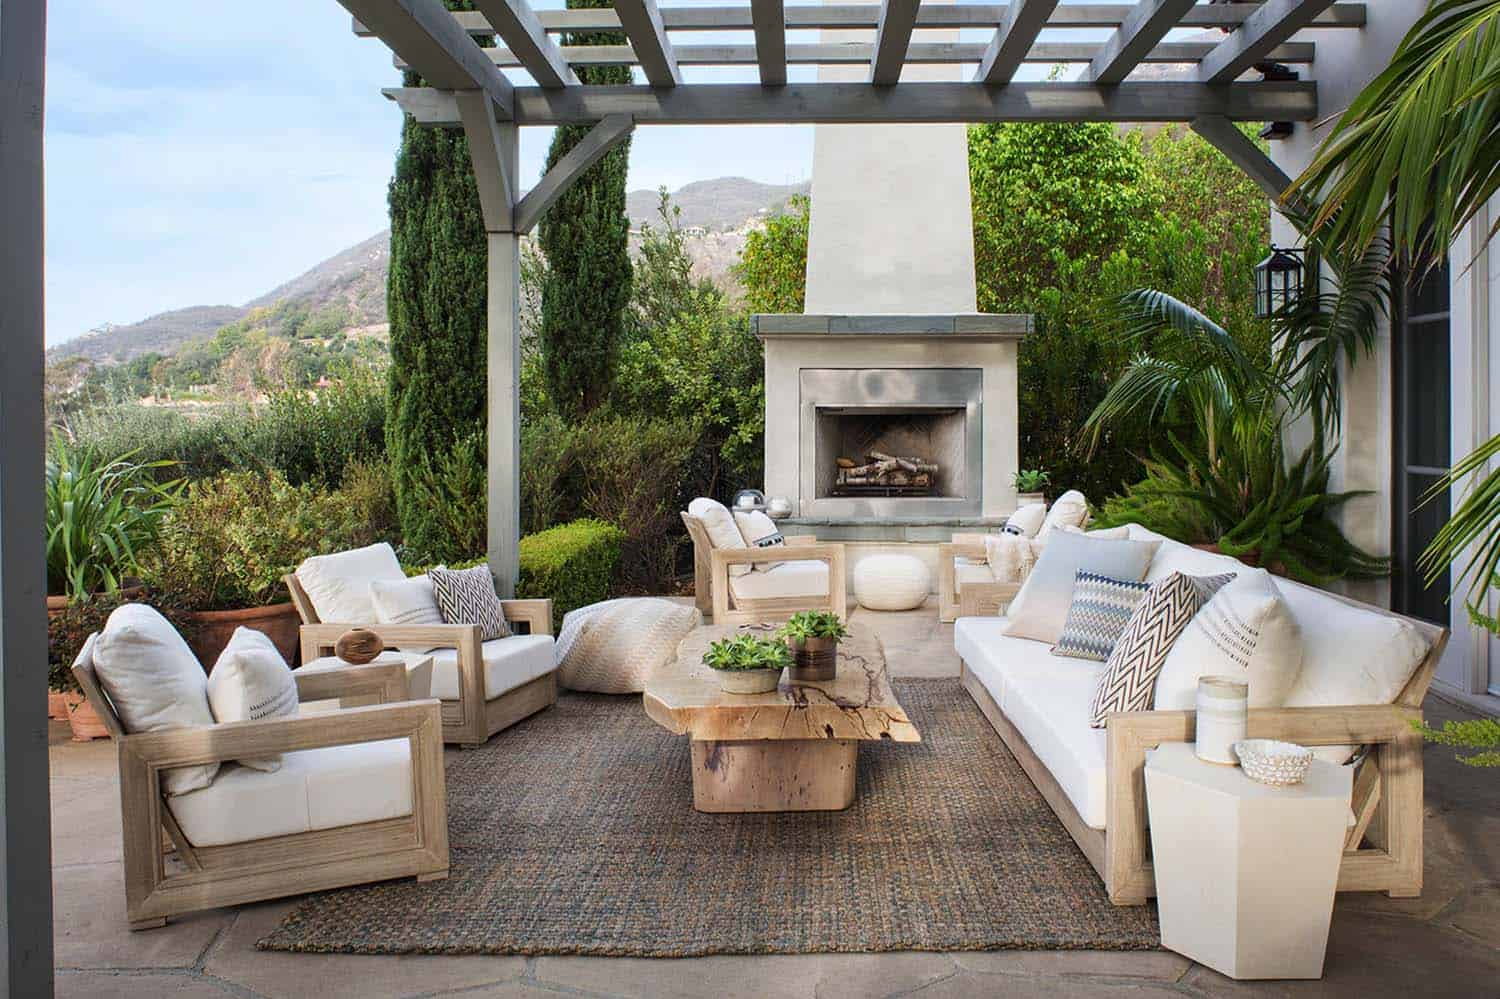 A Coastal Home In Santa Barbara California Offers Sweeping Views Over Canyon From Its Outdoor Terrace Furnishings Are Grouped Around An